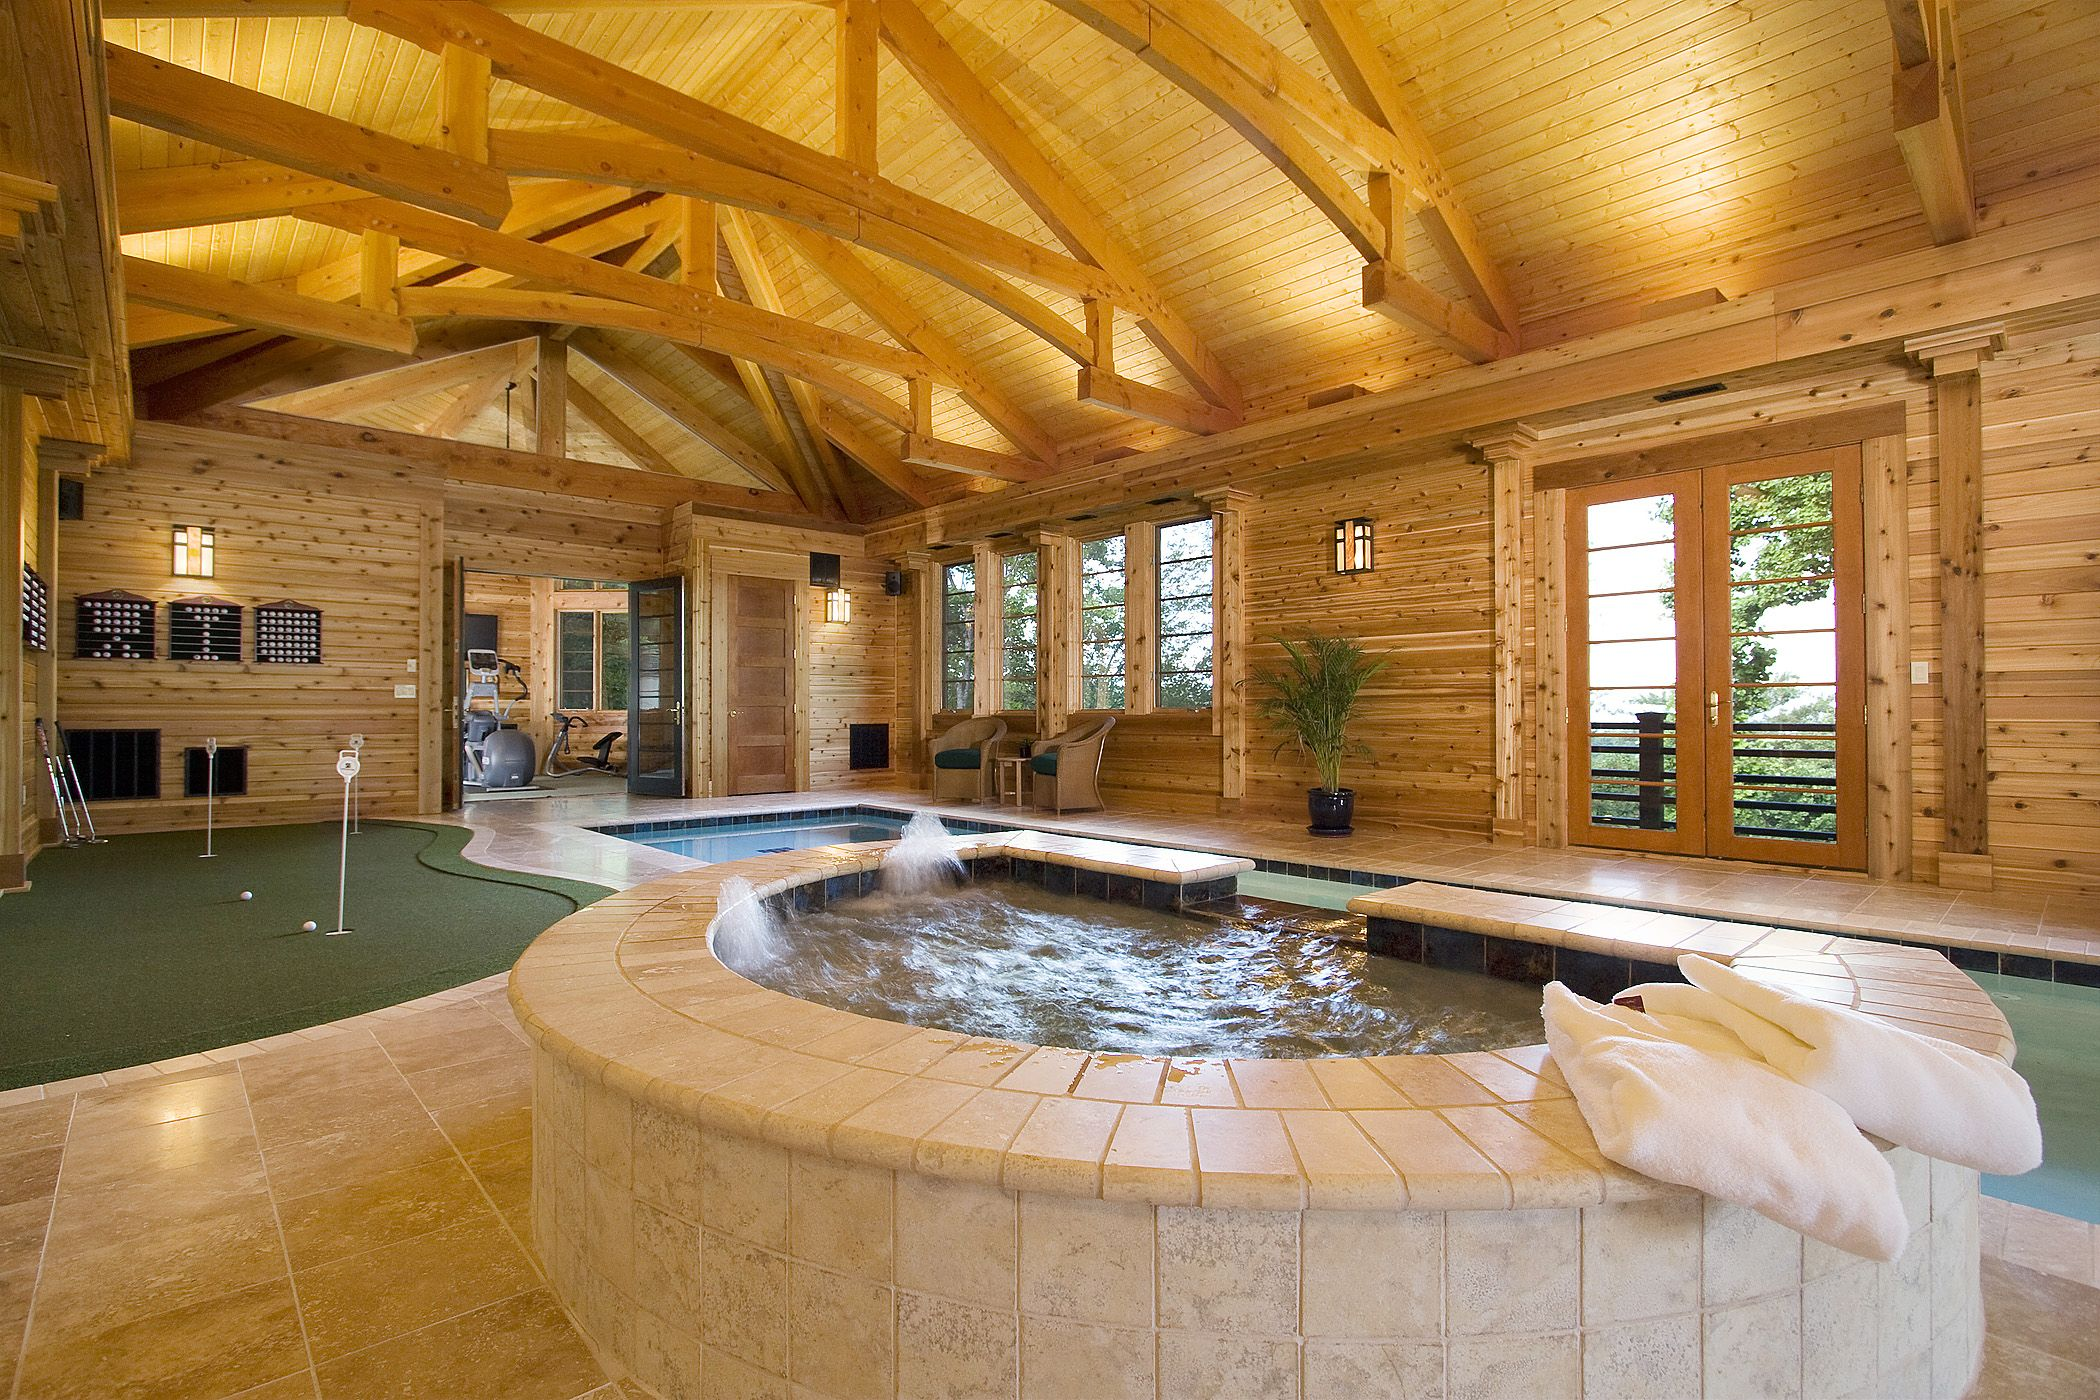 Luxury Homes With Indoor Pools stunning indoor pool timber frame pool house with hot tub, built